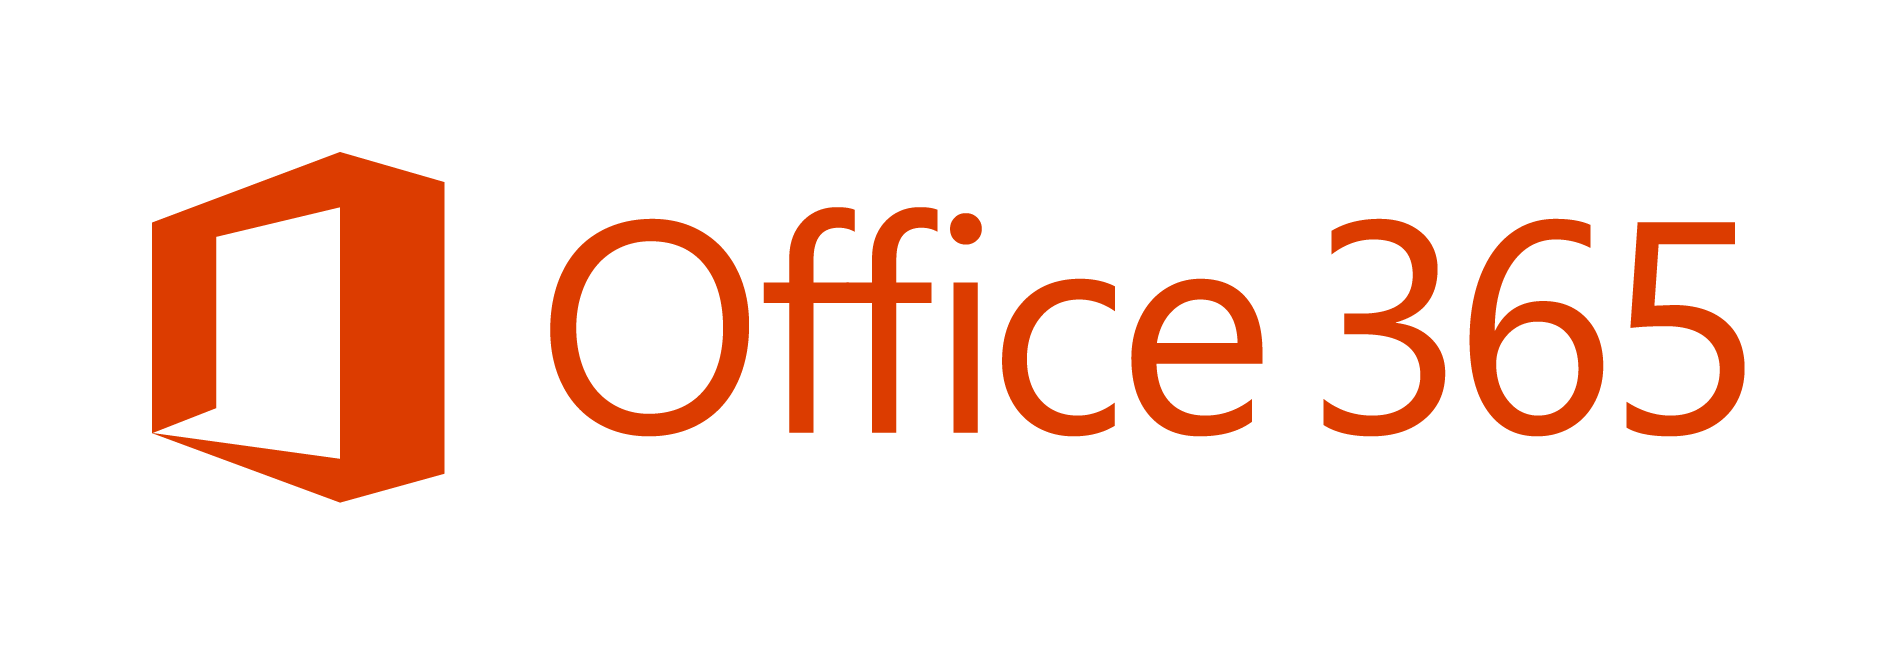 Microsoft Office 365 News: Teams Updates and More